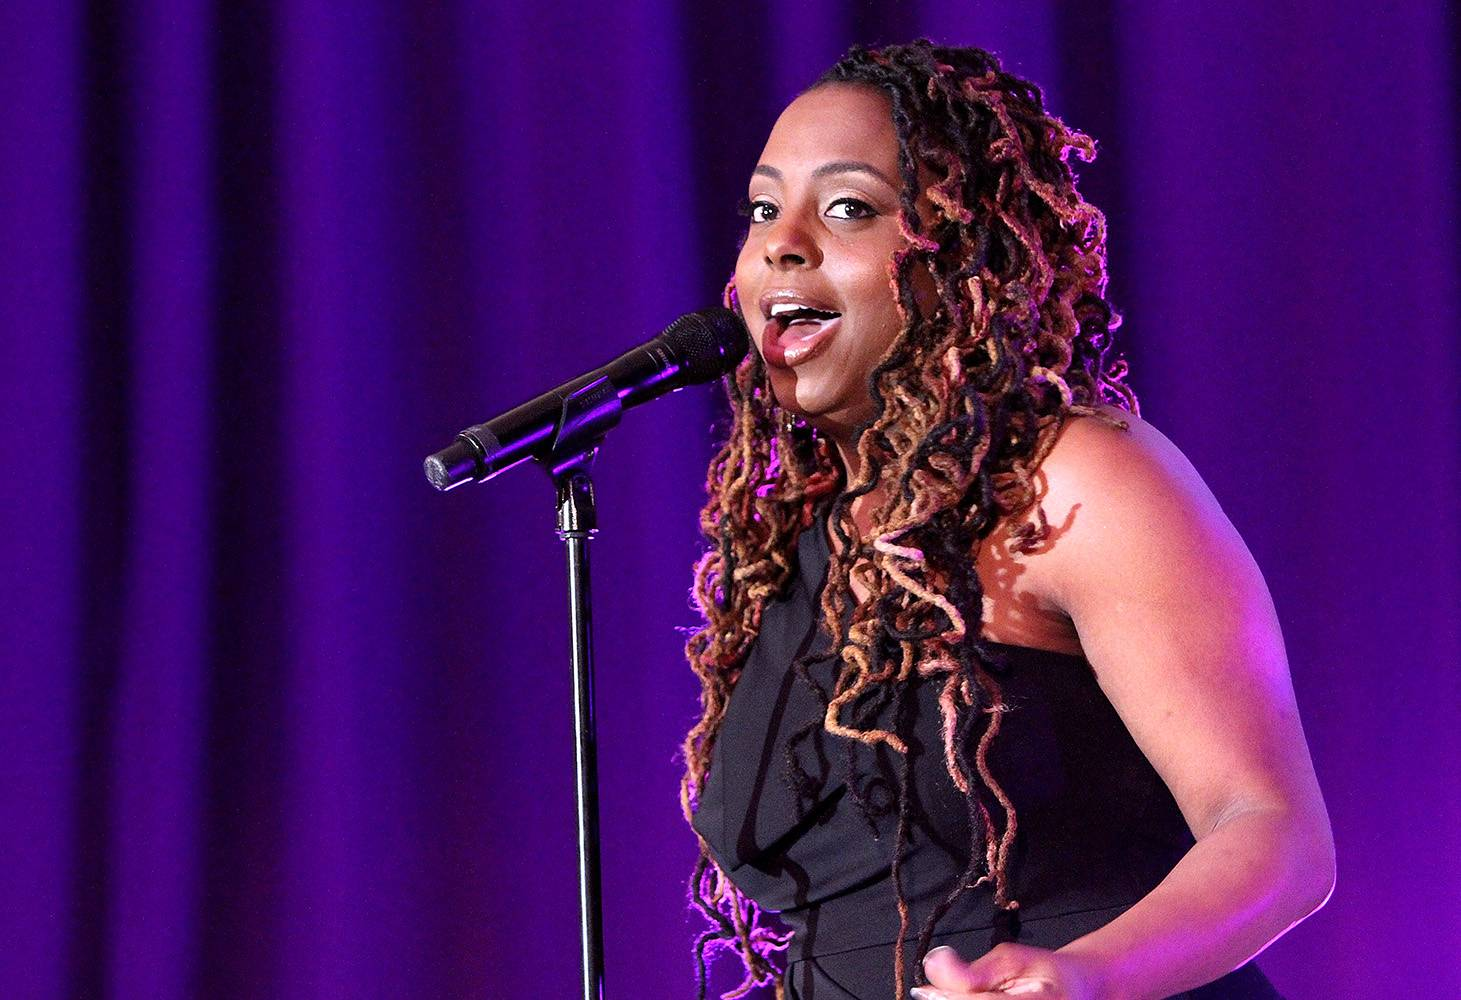 Ledisi - When jazz meets R&B, the vocals of Ledisi shines bright and reigns supreme. That?s the effect that her The Truth LP has with a sound that draws listeners in and keeps them hooked for the duration.(Photo: Maury Phillips/WireImage)